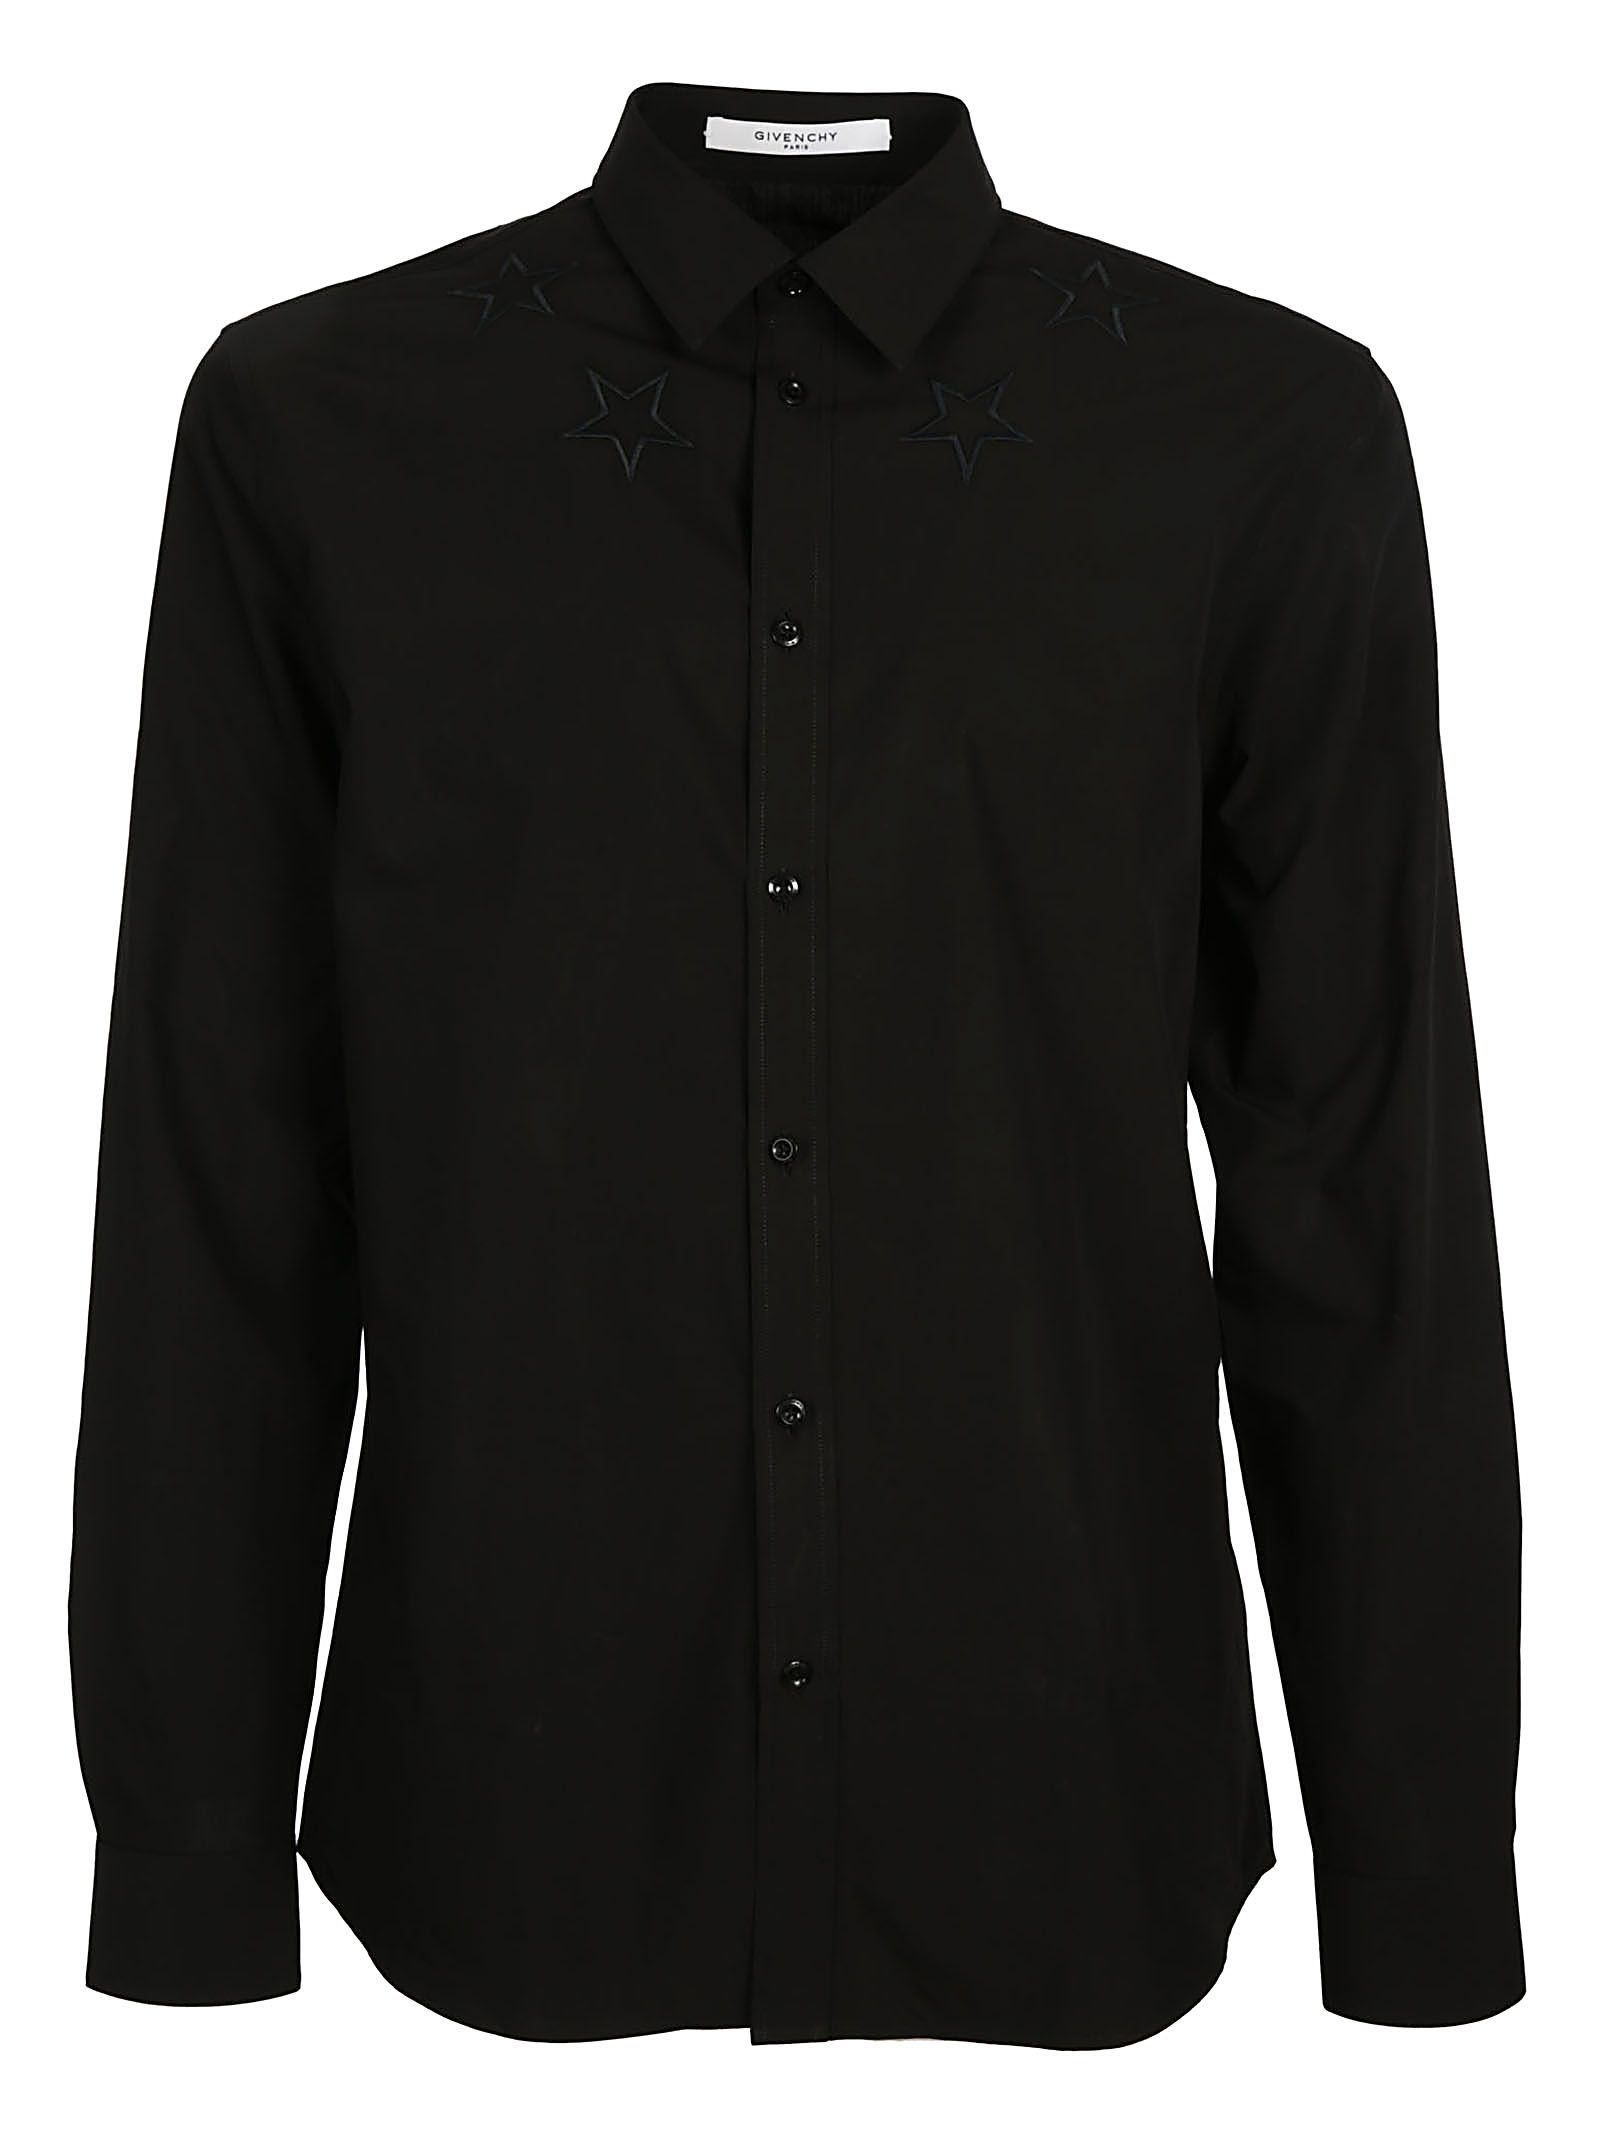 Givenchy Star Embroidered Shirt ...